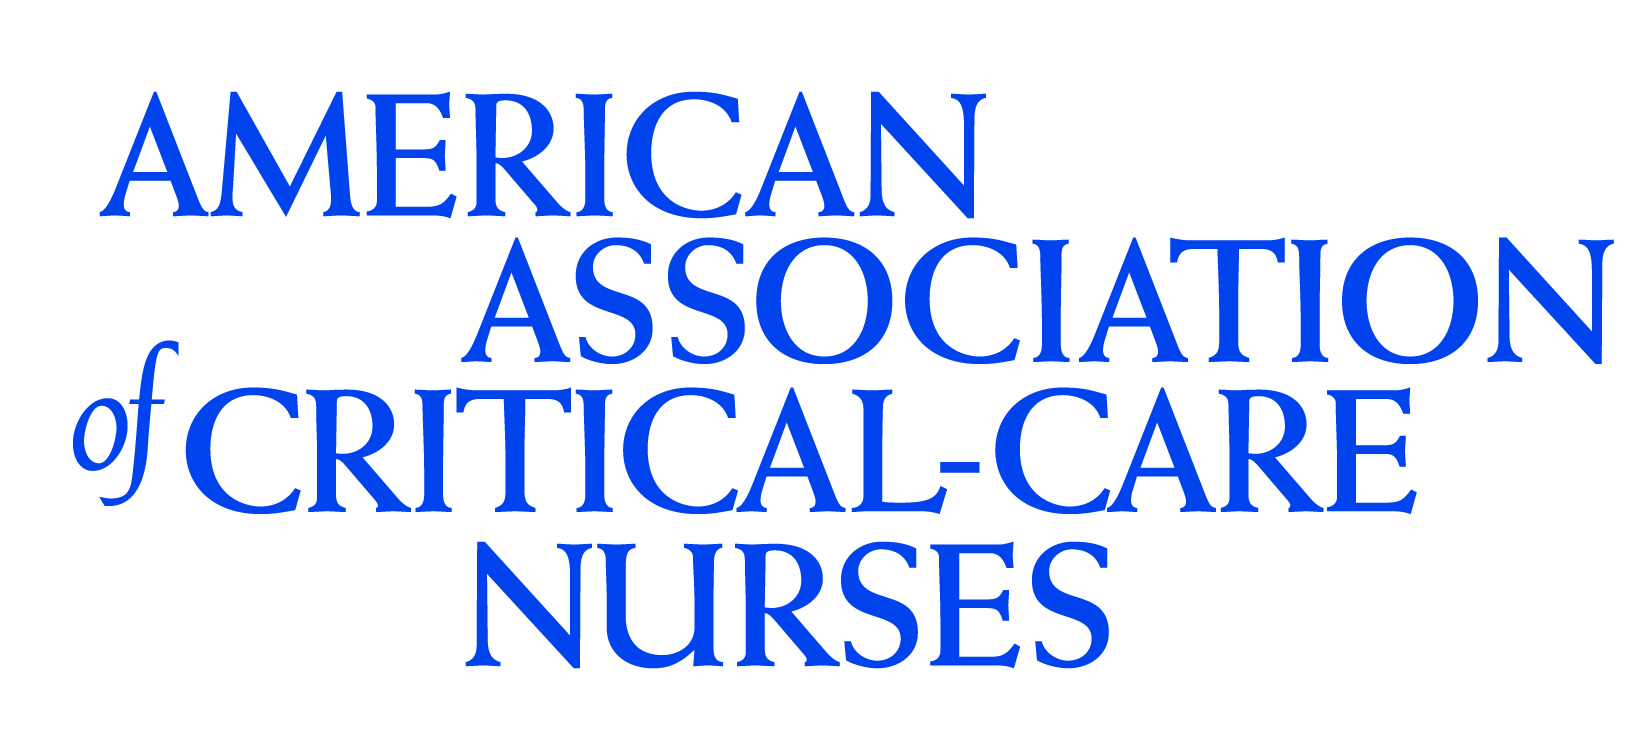 icu nurses Critical care nurses are registered nurses (rns) who care for acutely ill patients  of all ages they work in critical care settings, such as intensive care units and.